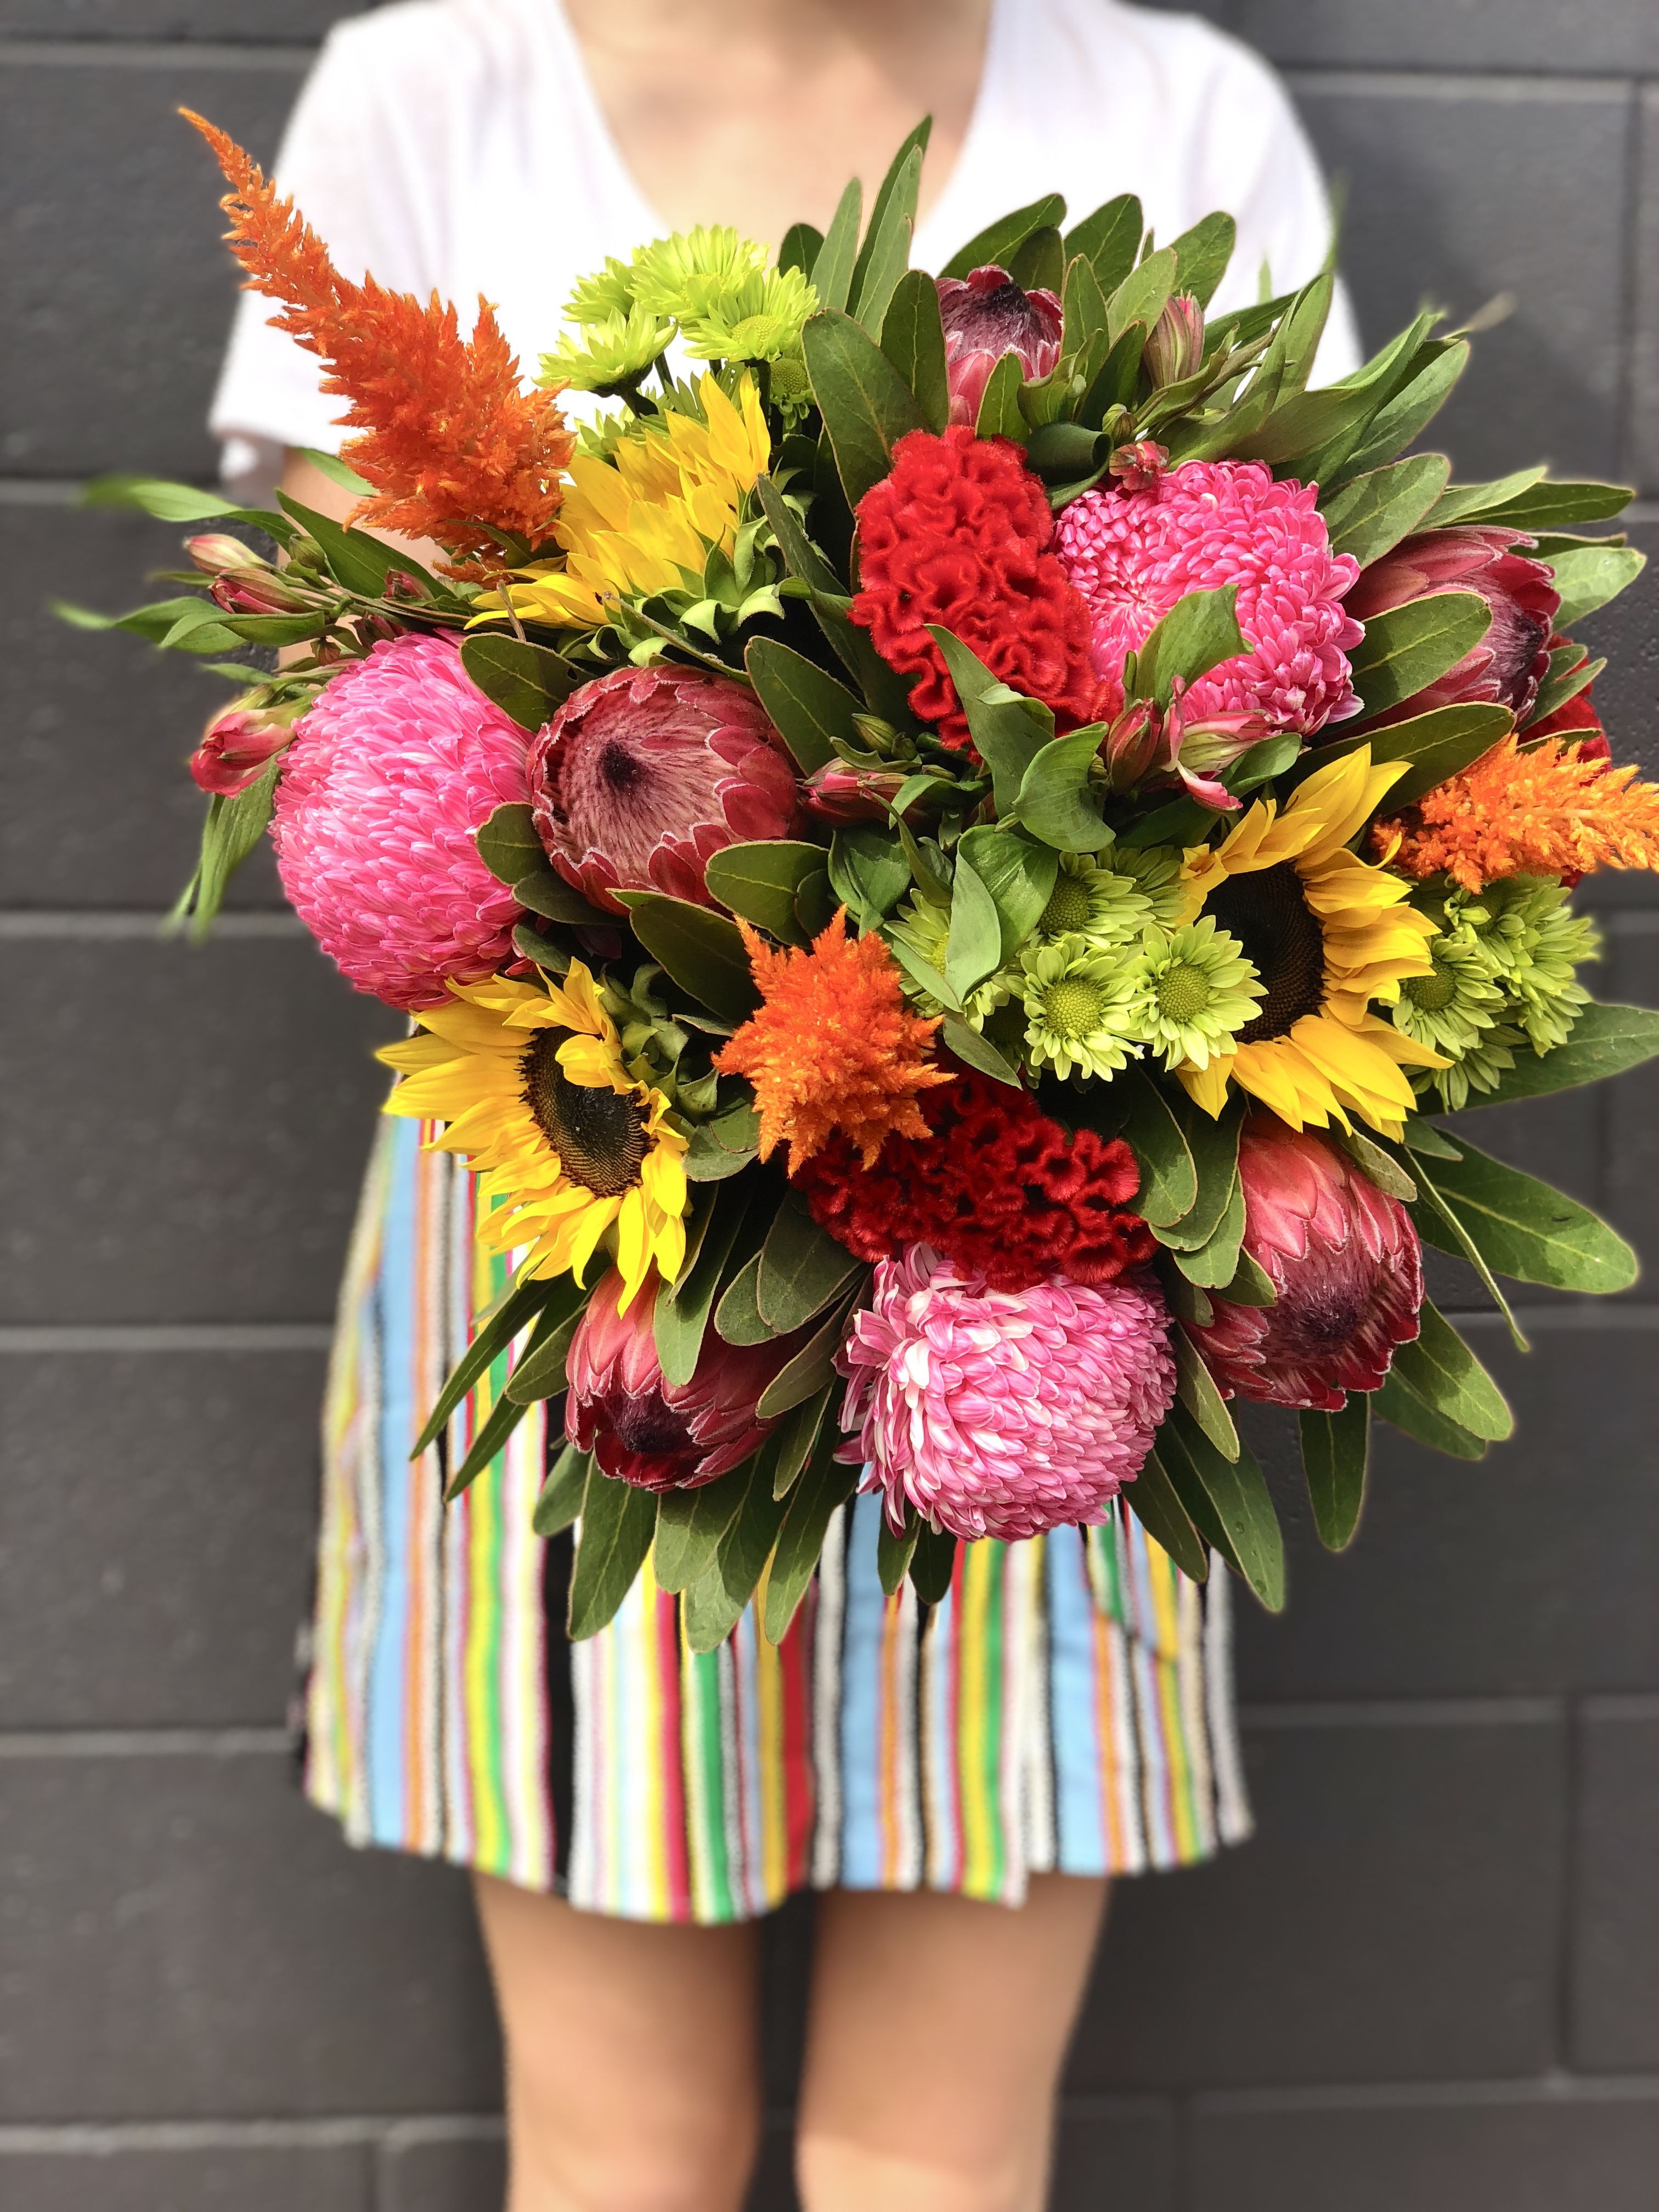 East End Flower Market 248 Grenfell Street Adelaide 5000 Order online now